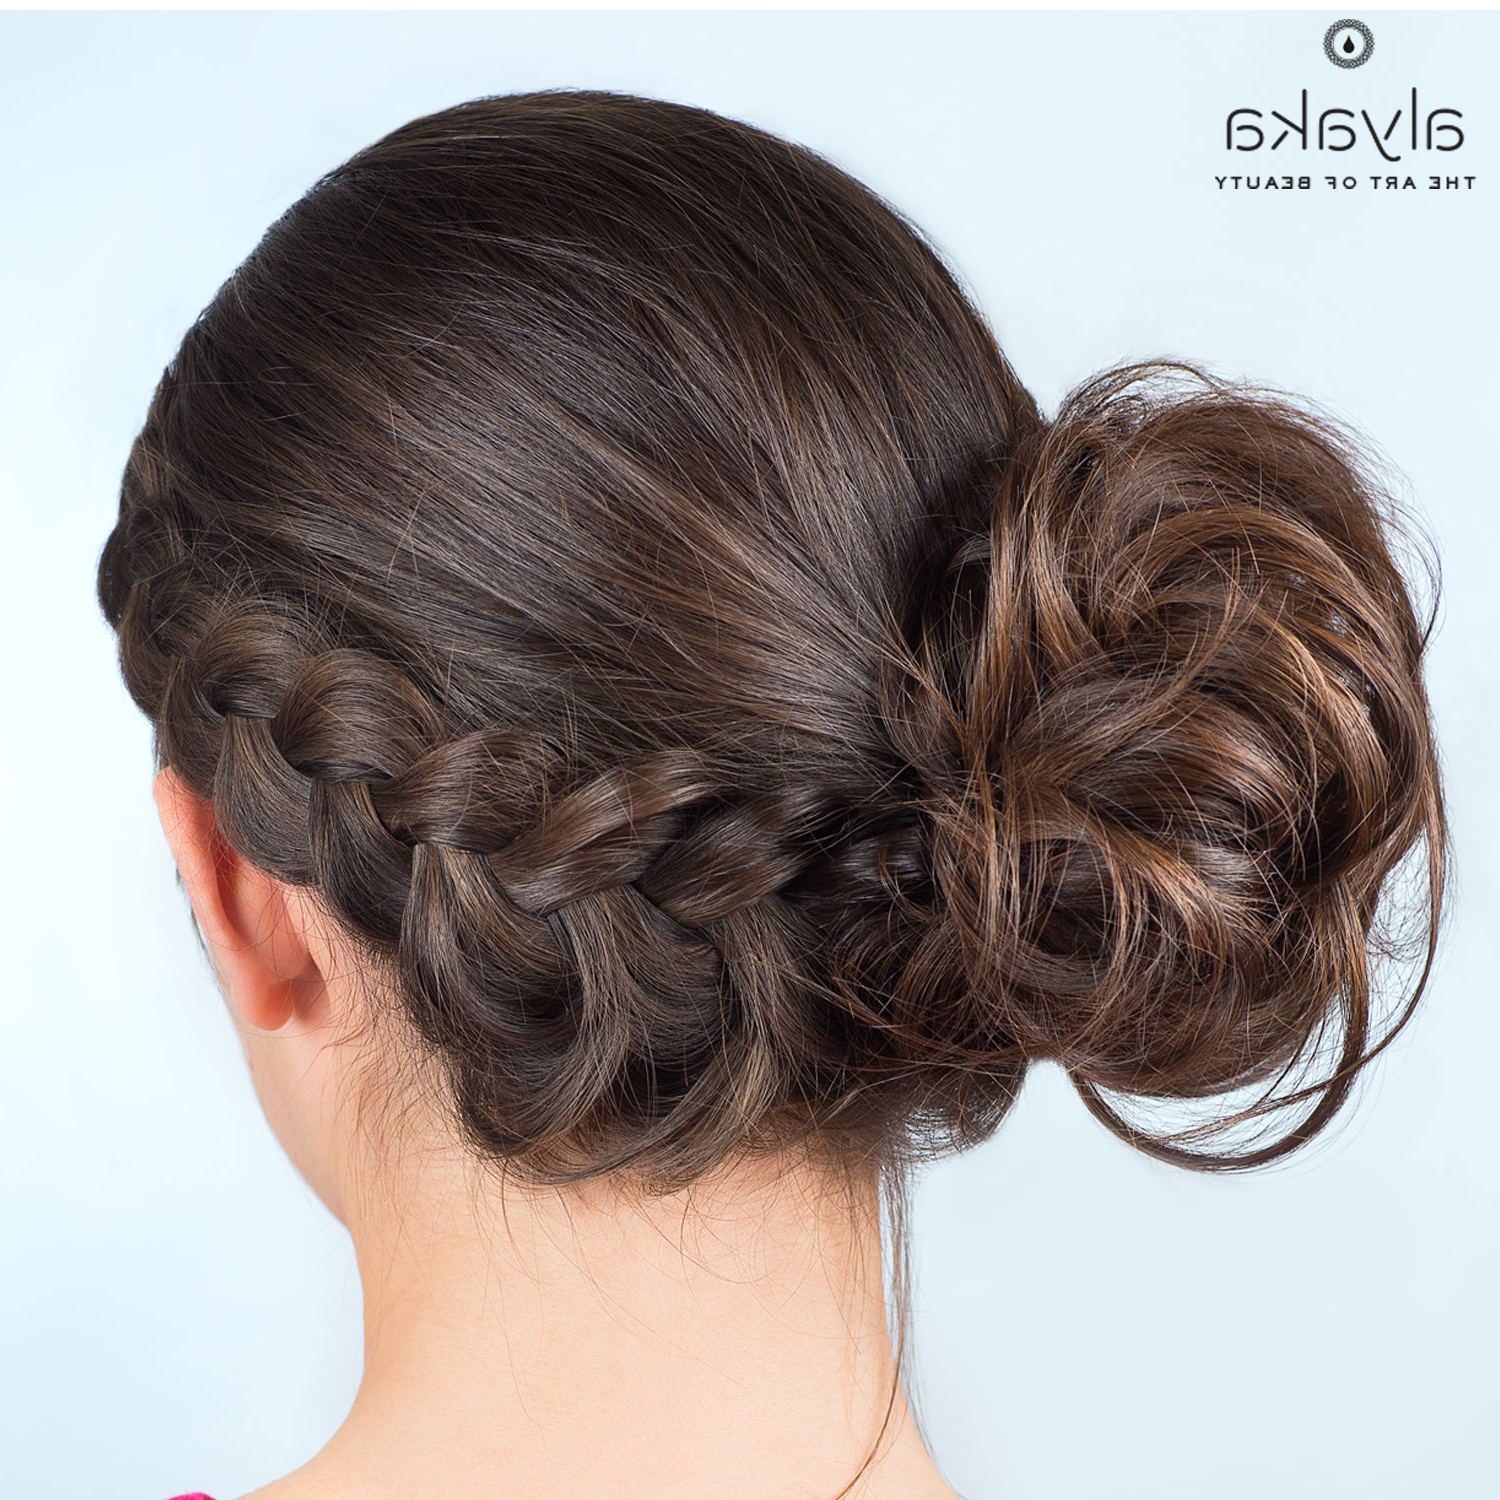 Alyaka Inside Well Known Classy Low Bun Hairstyles For Big Foreheads (View 13 of 20)